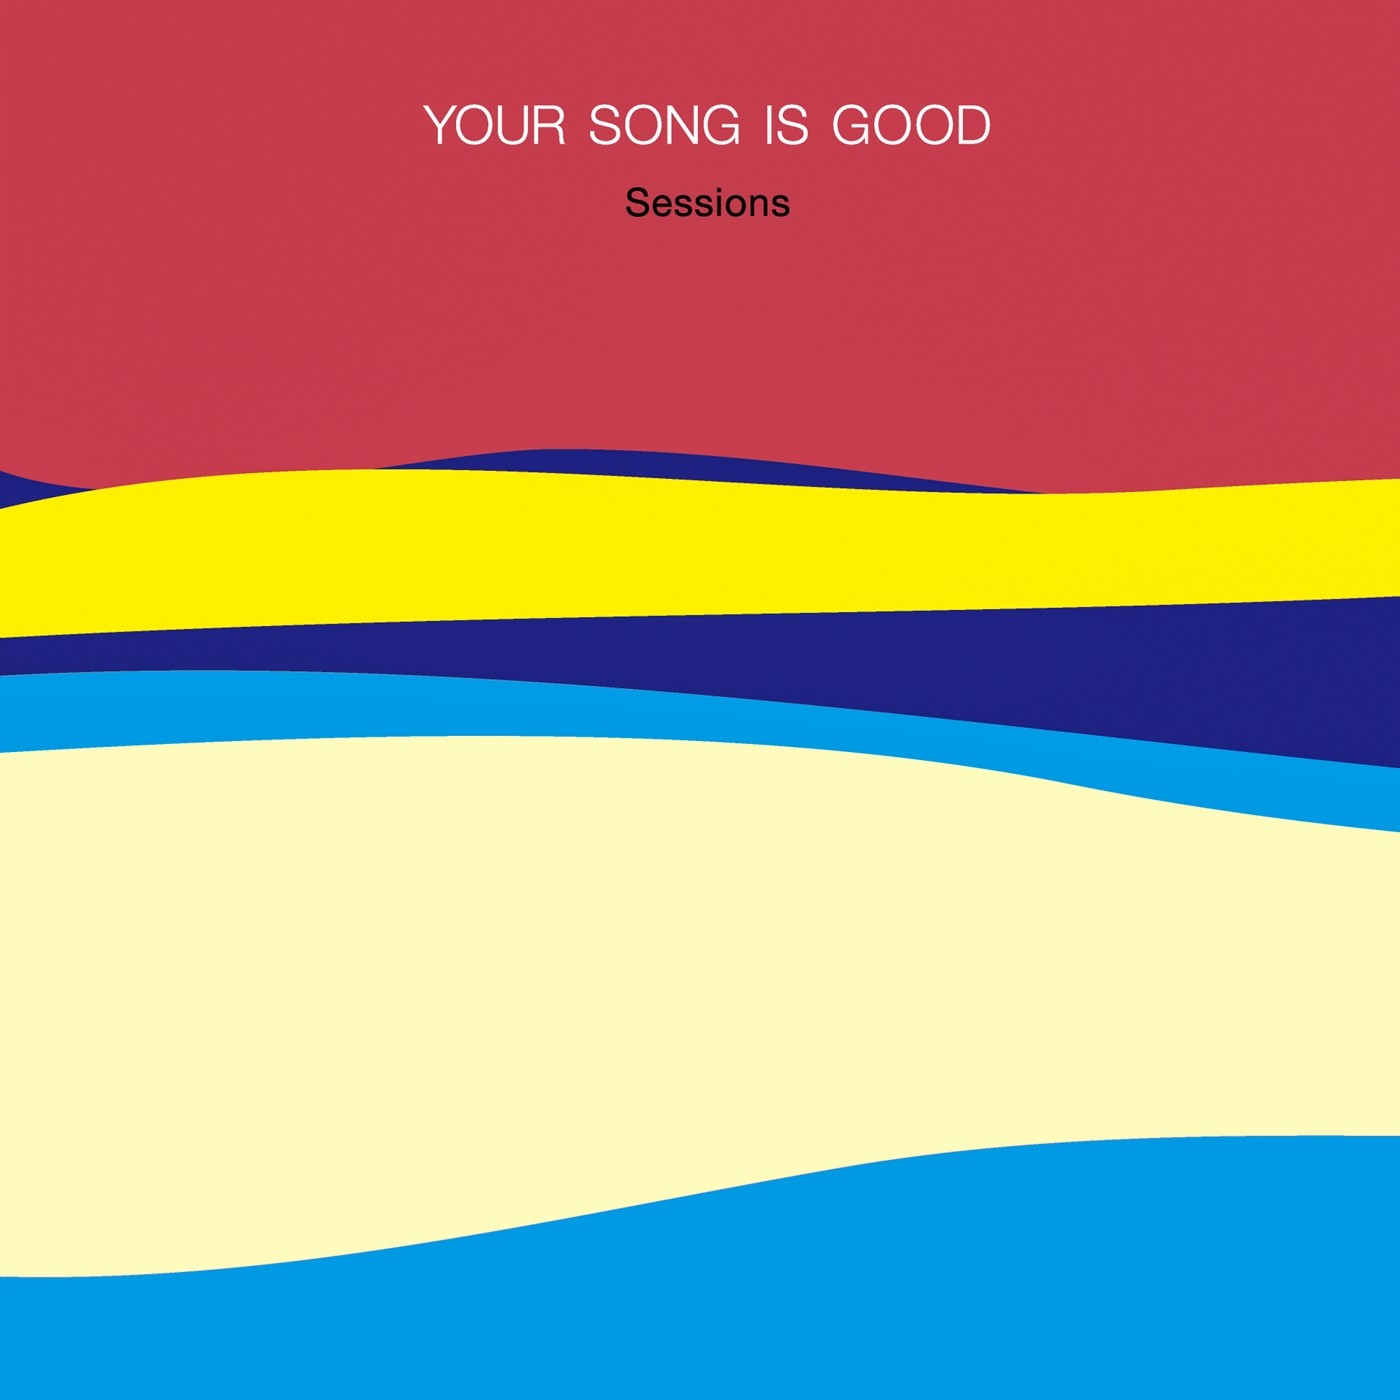 YOUR SONG IS GOOD – Sessions [FLAC + MP3 VBR / WEB] [2019.03.06]